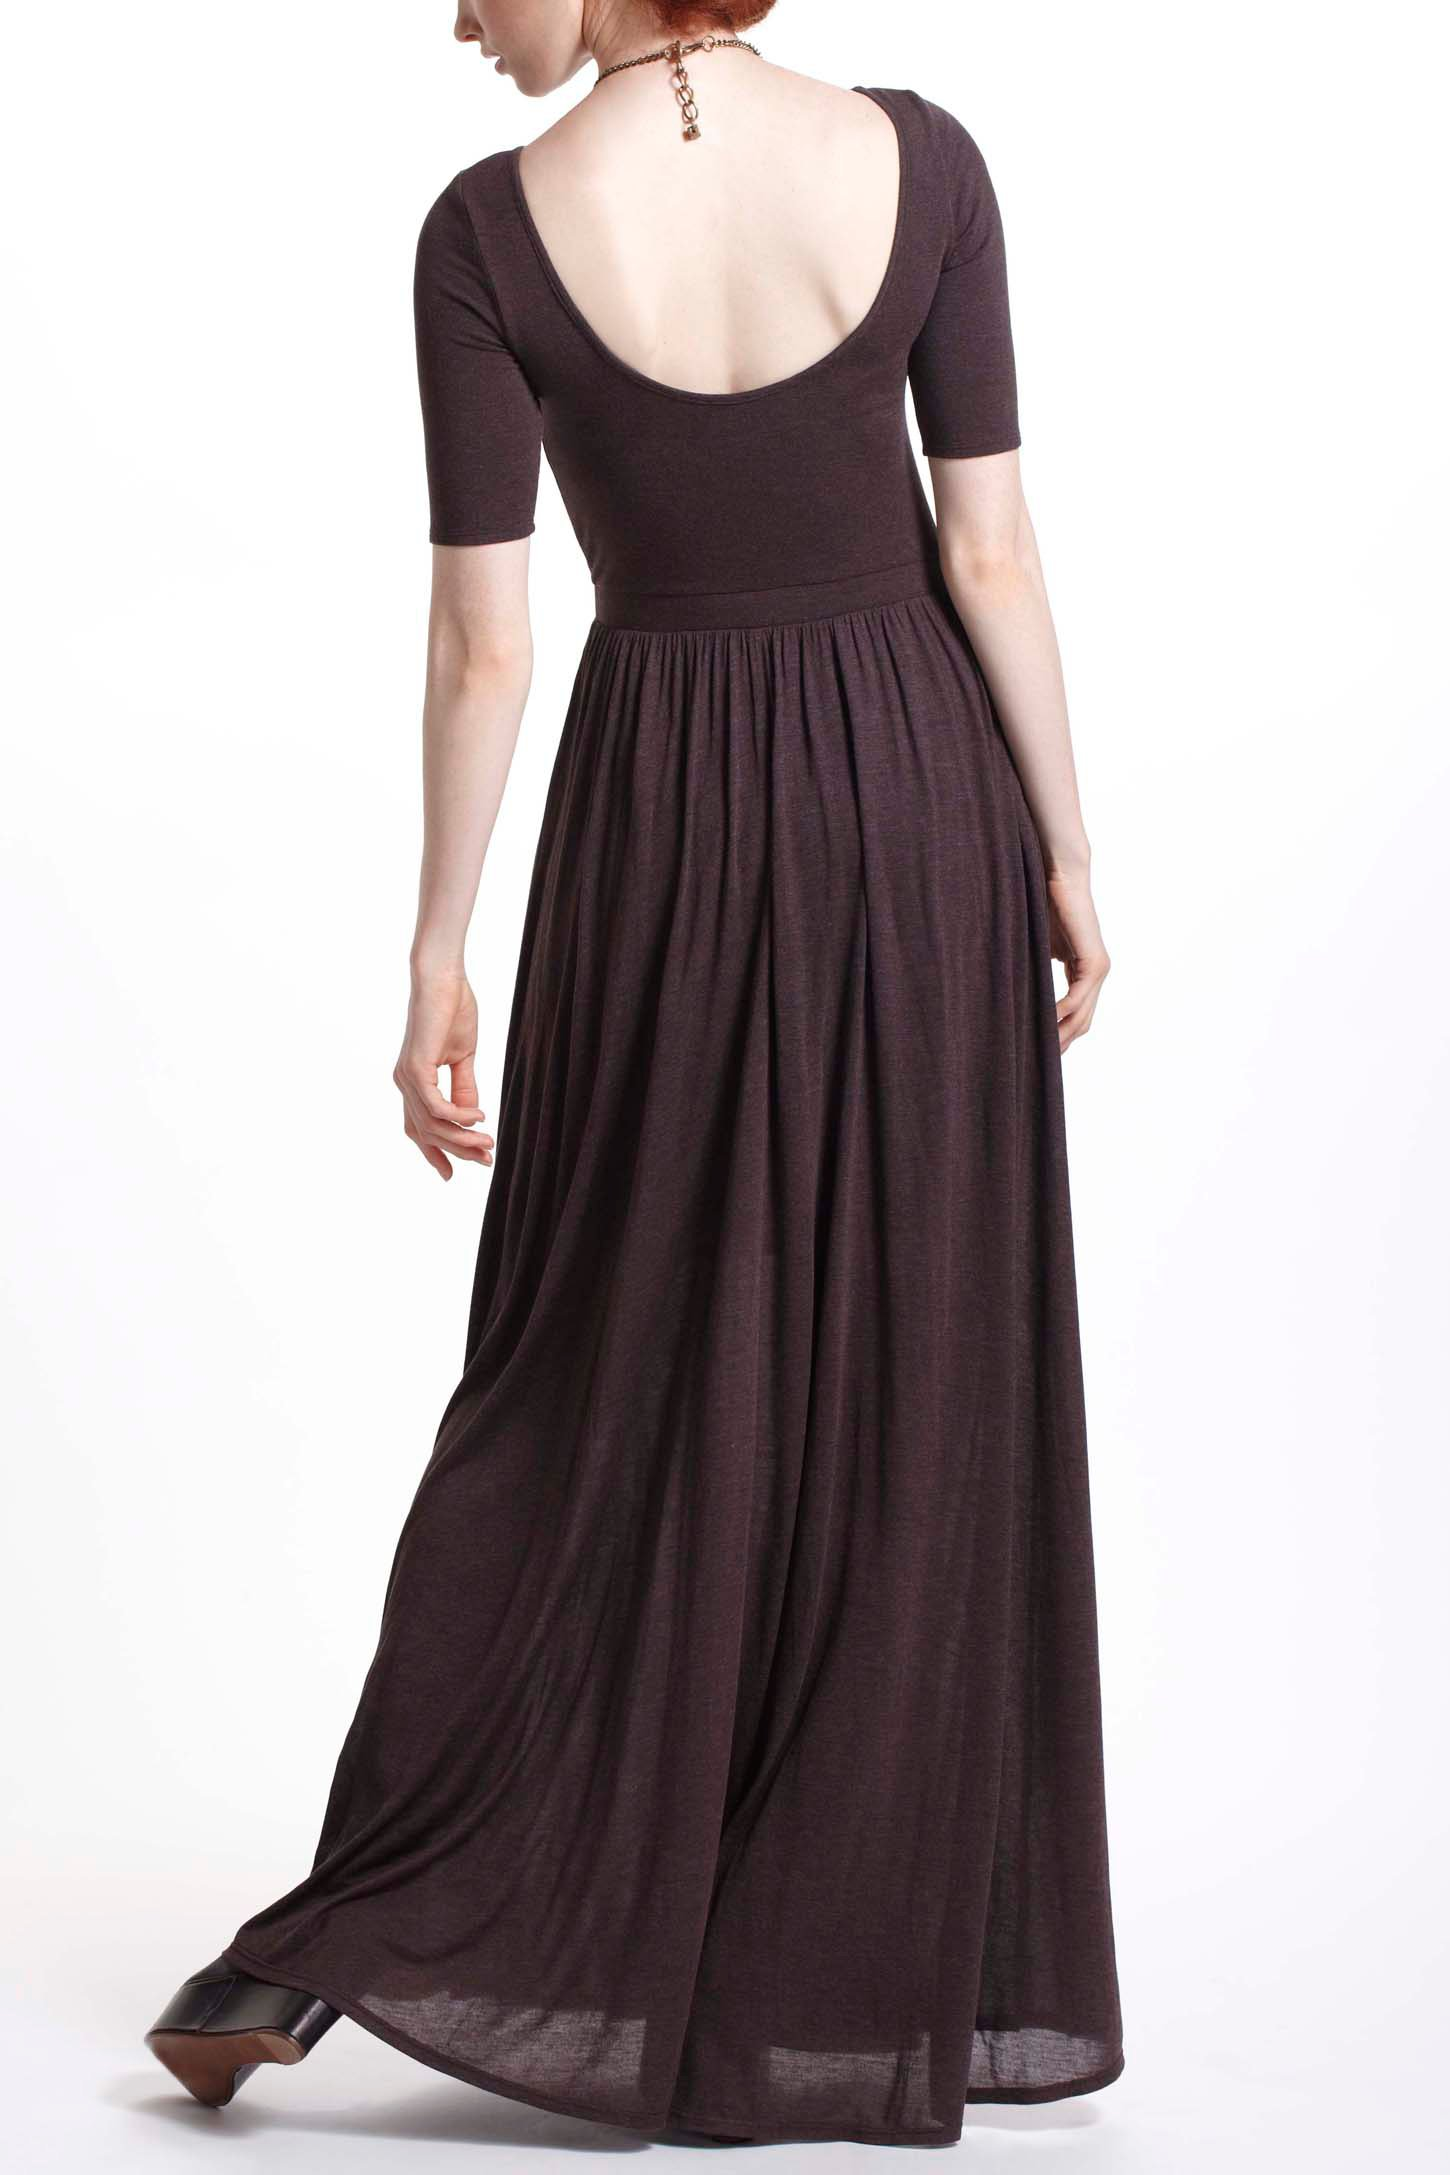 Anthropologie scoopback maxi dress in brown lyst for Anthropologie mural maxi dress